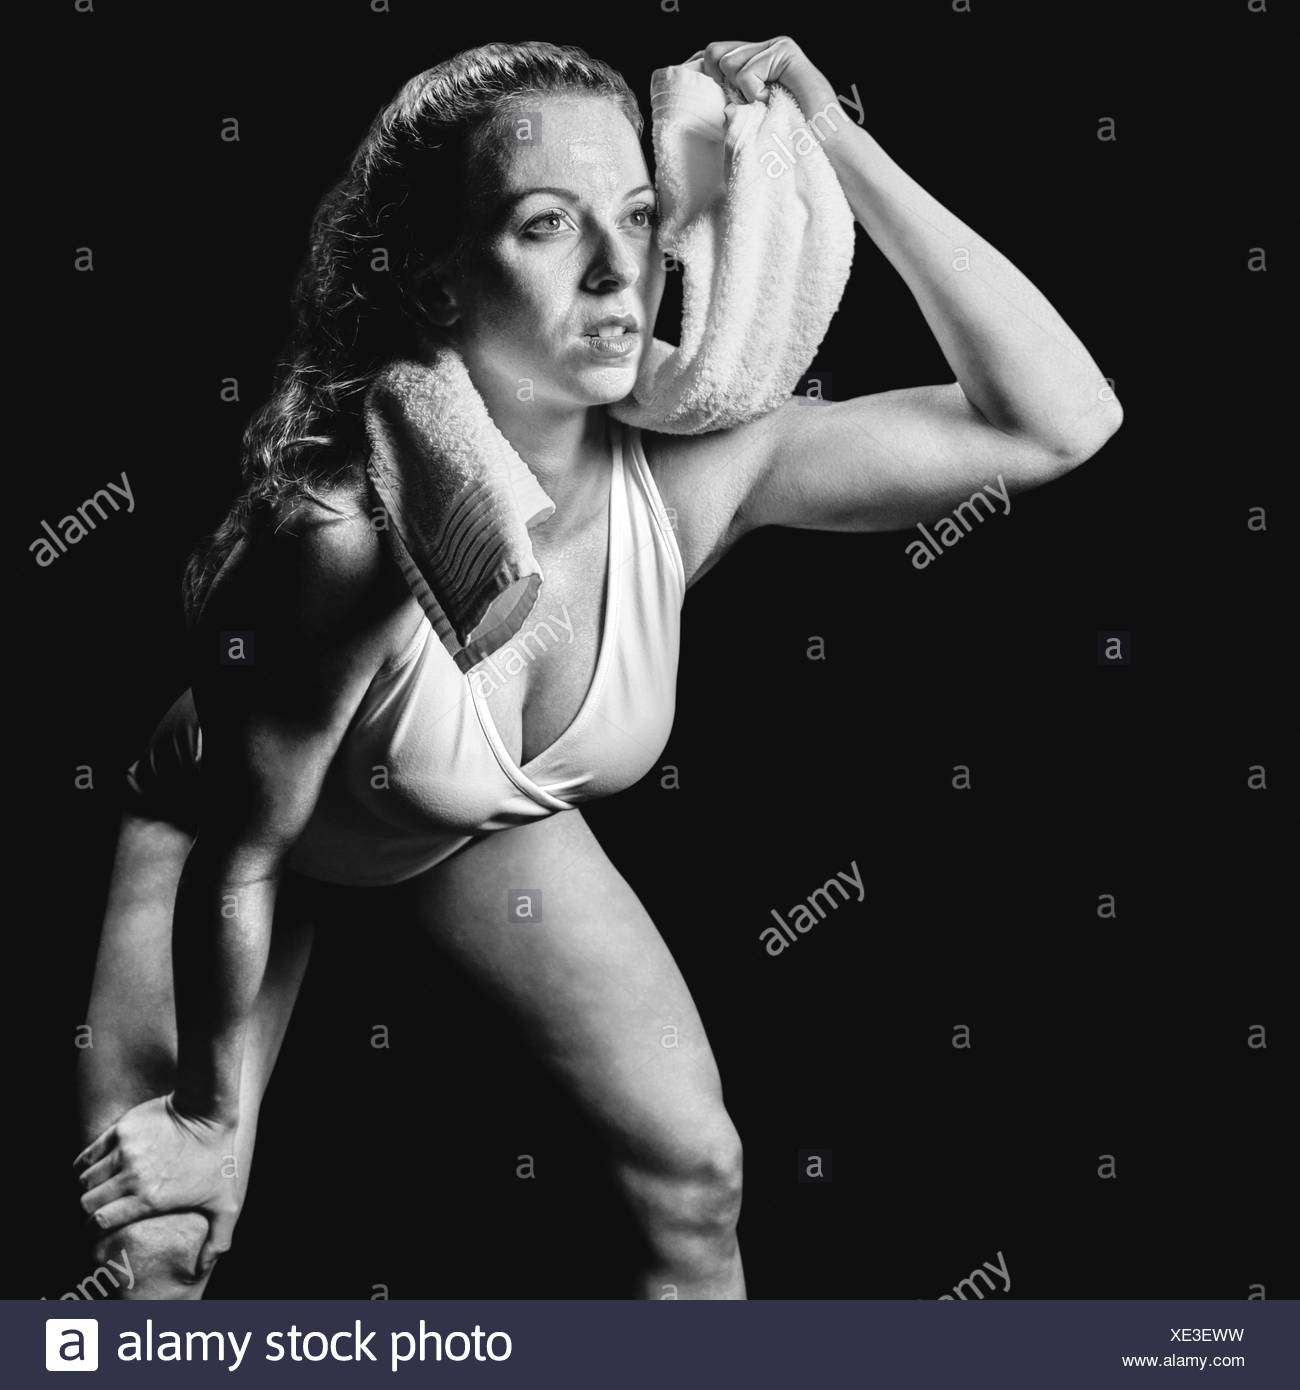 Composite image of athlete wiping sweat with towel while looking up - Stock Image